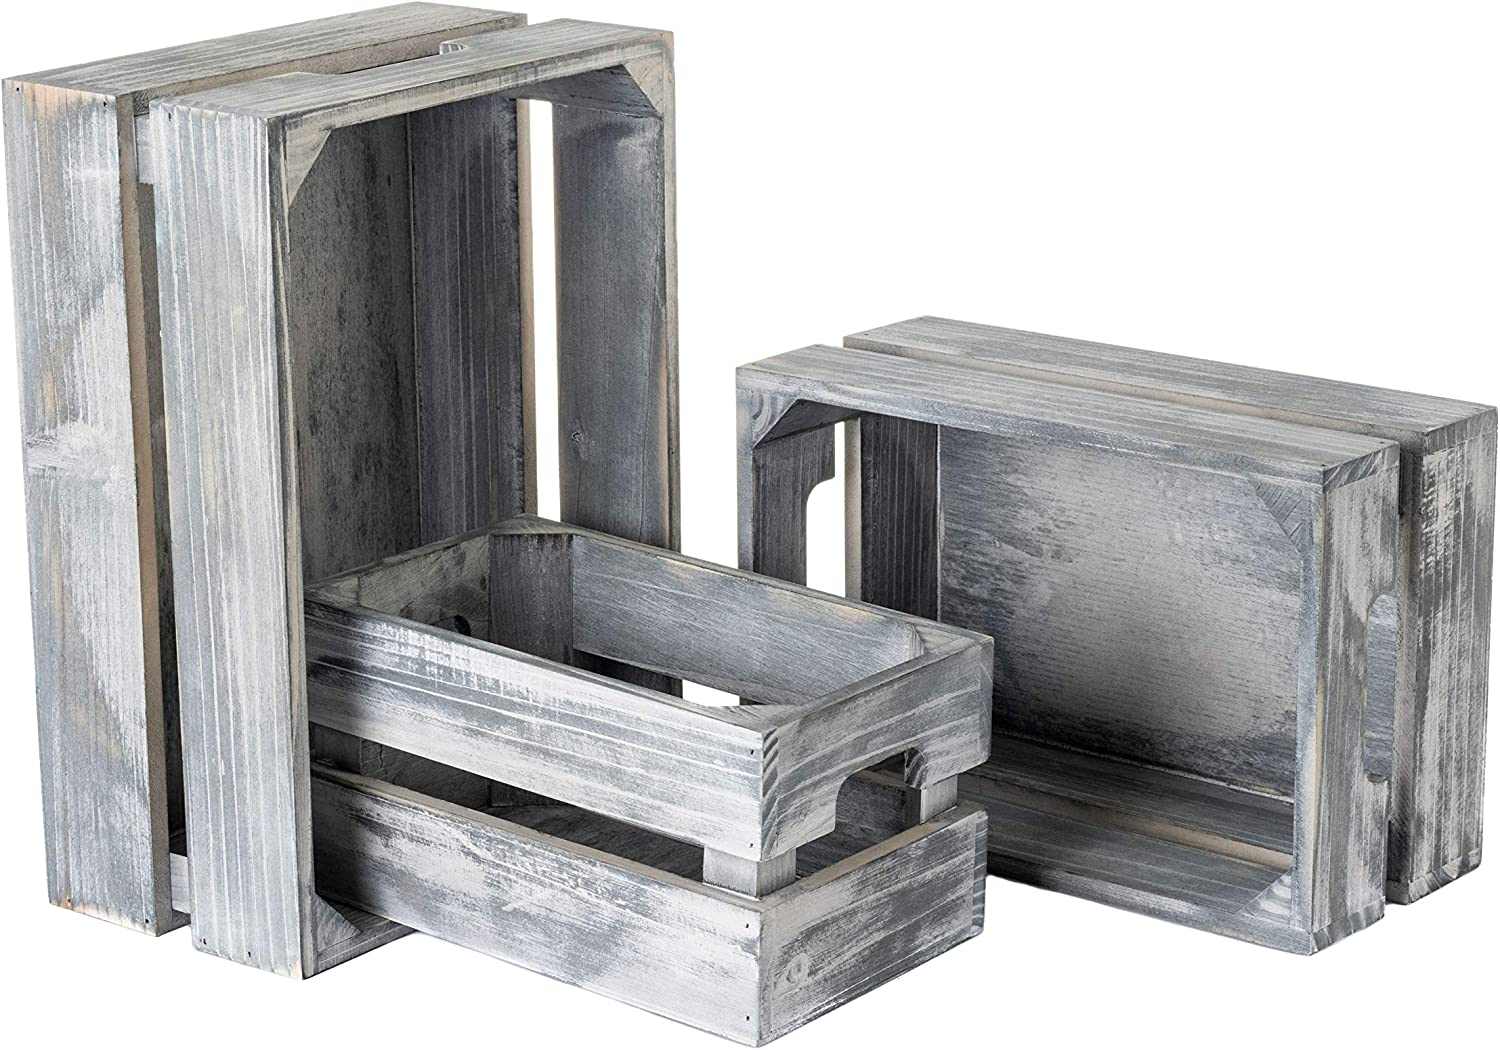 Strova Gray Nesting New product!! Wood Crates for Storage 3 Set Display of Limited price sale or